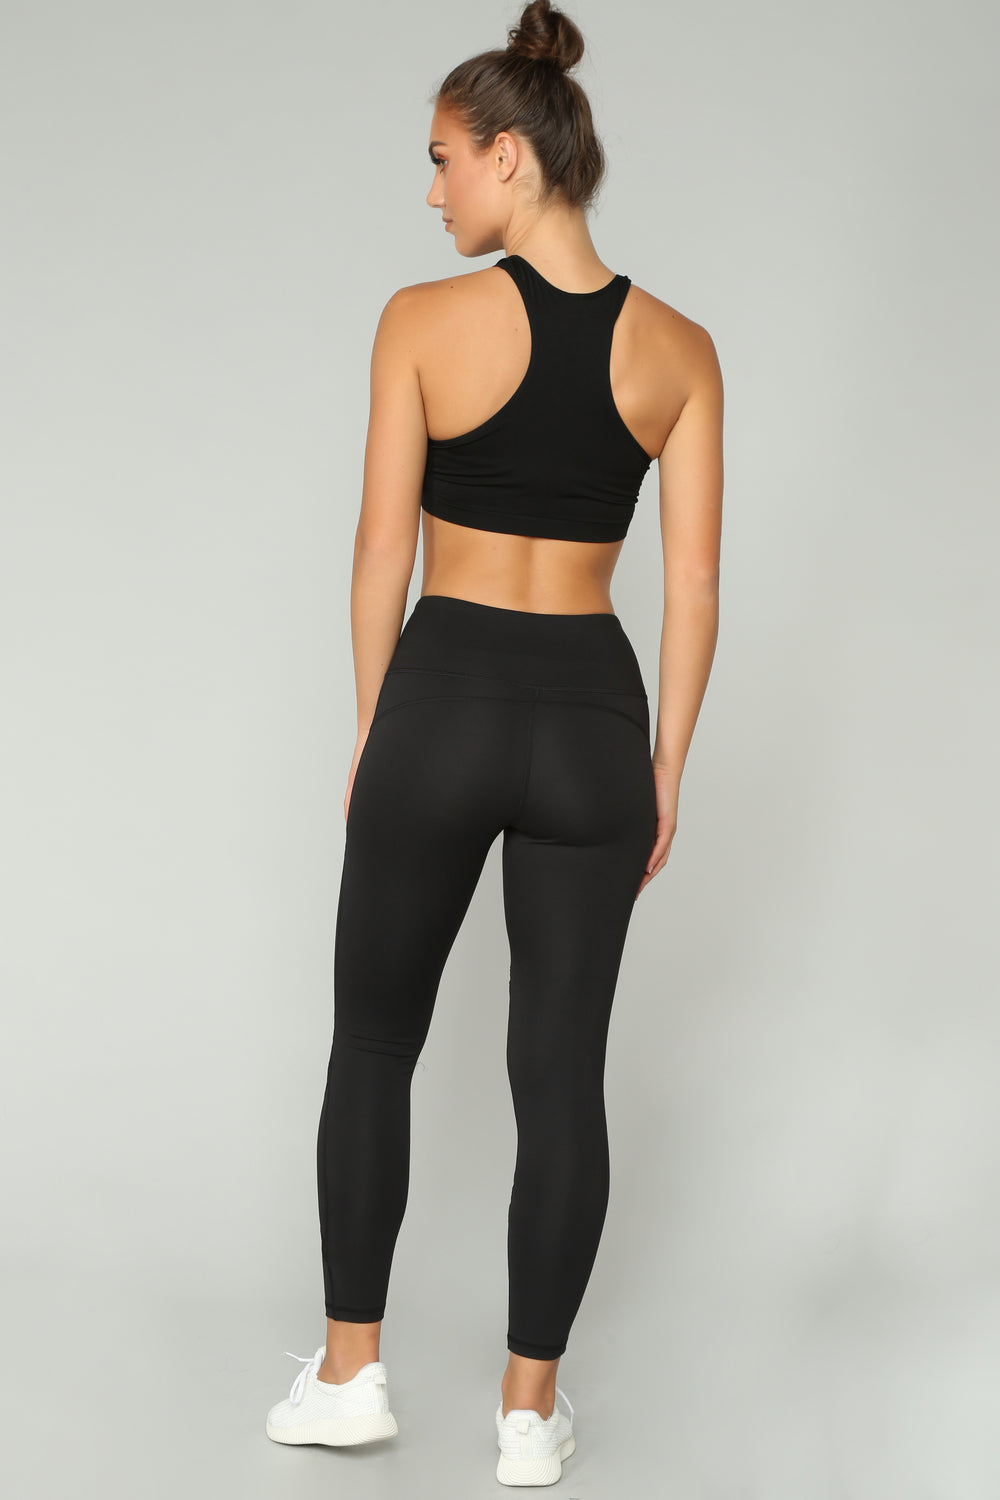 Anastacia High Rise Leggings - Black